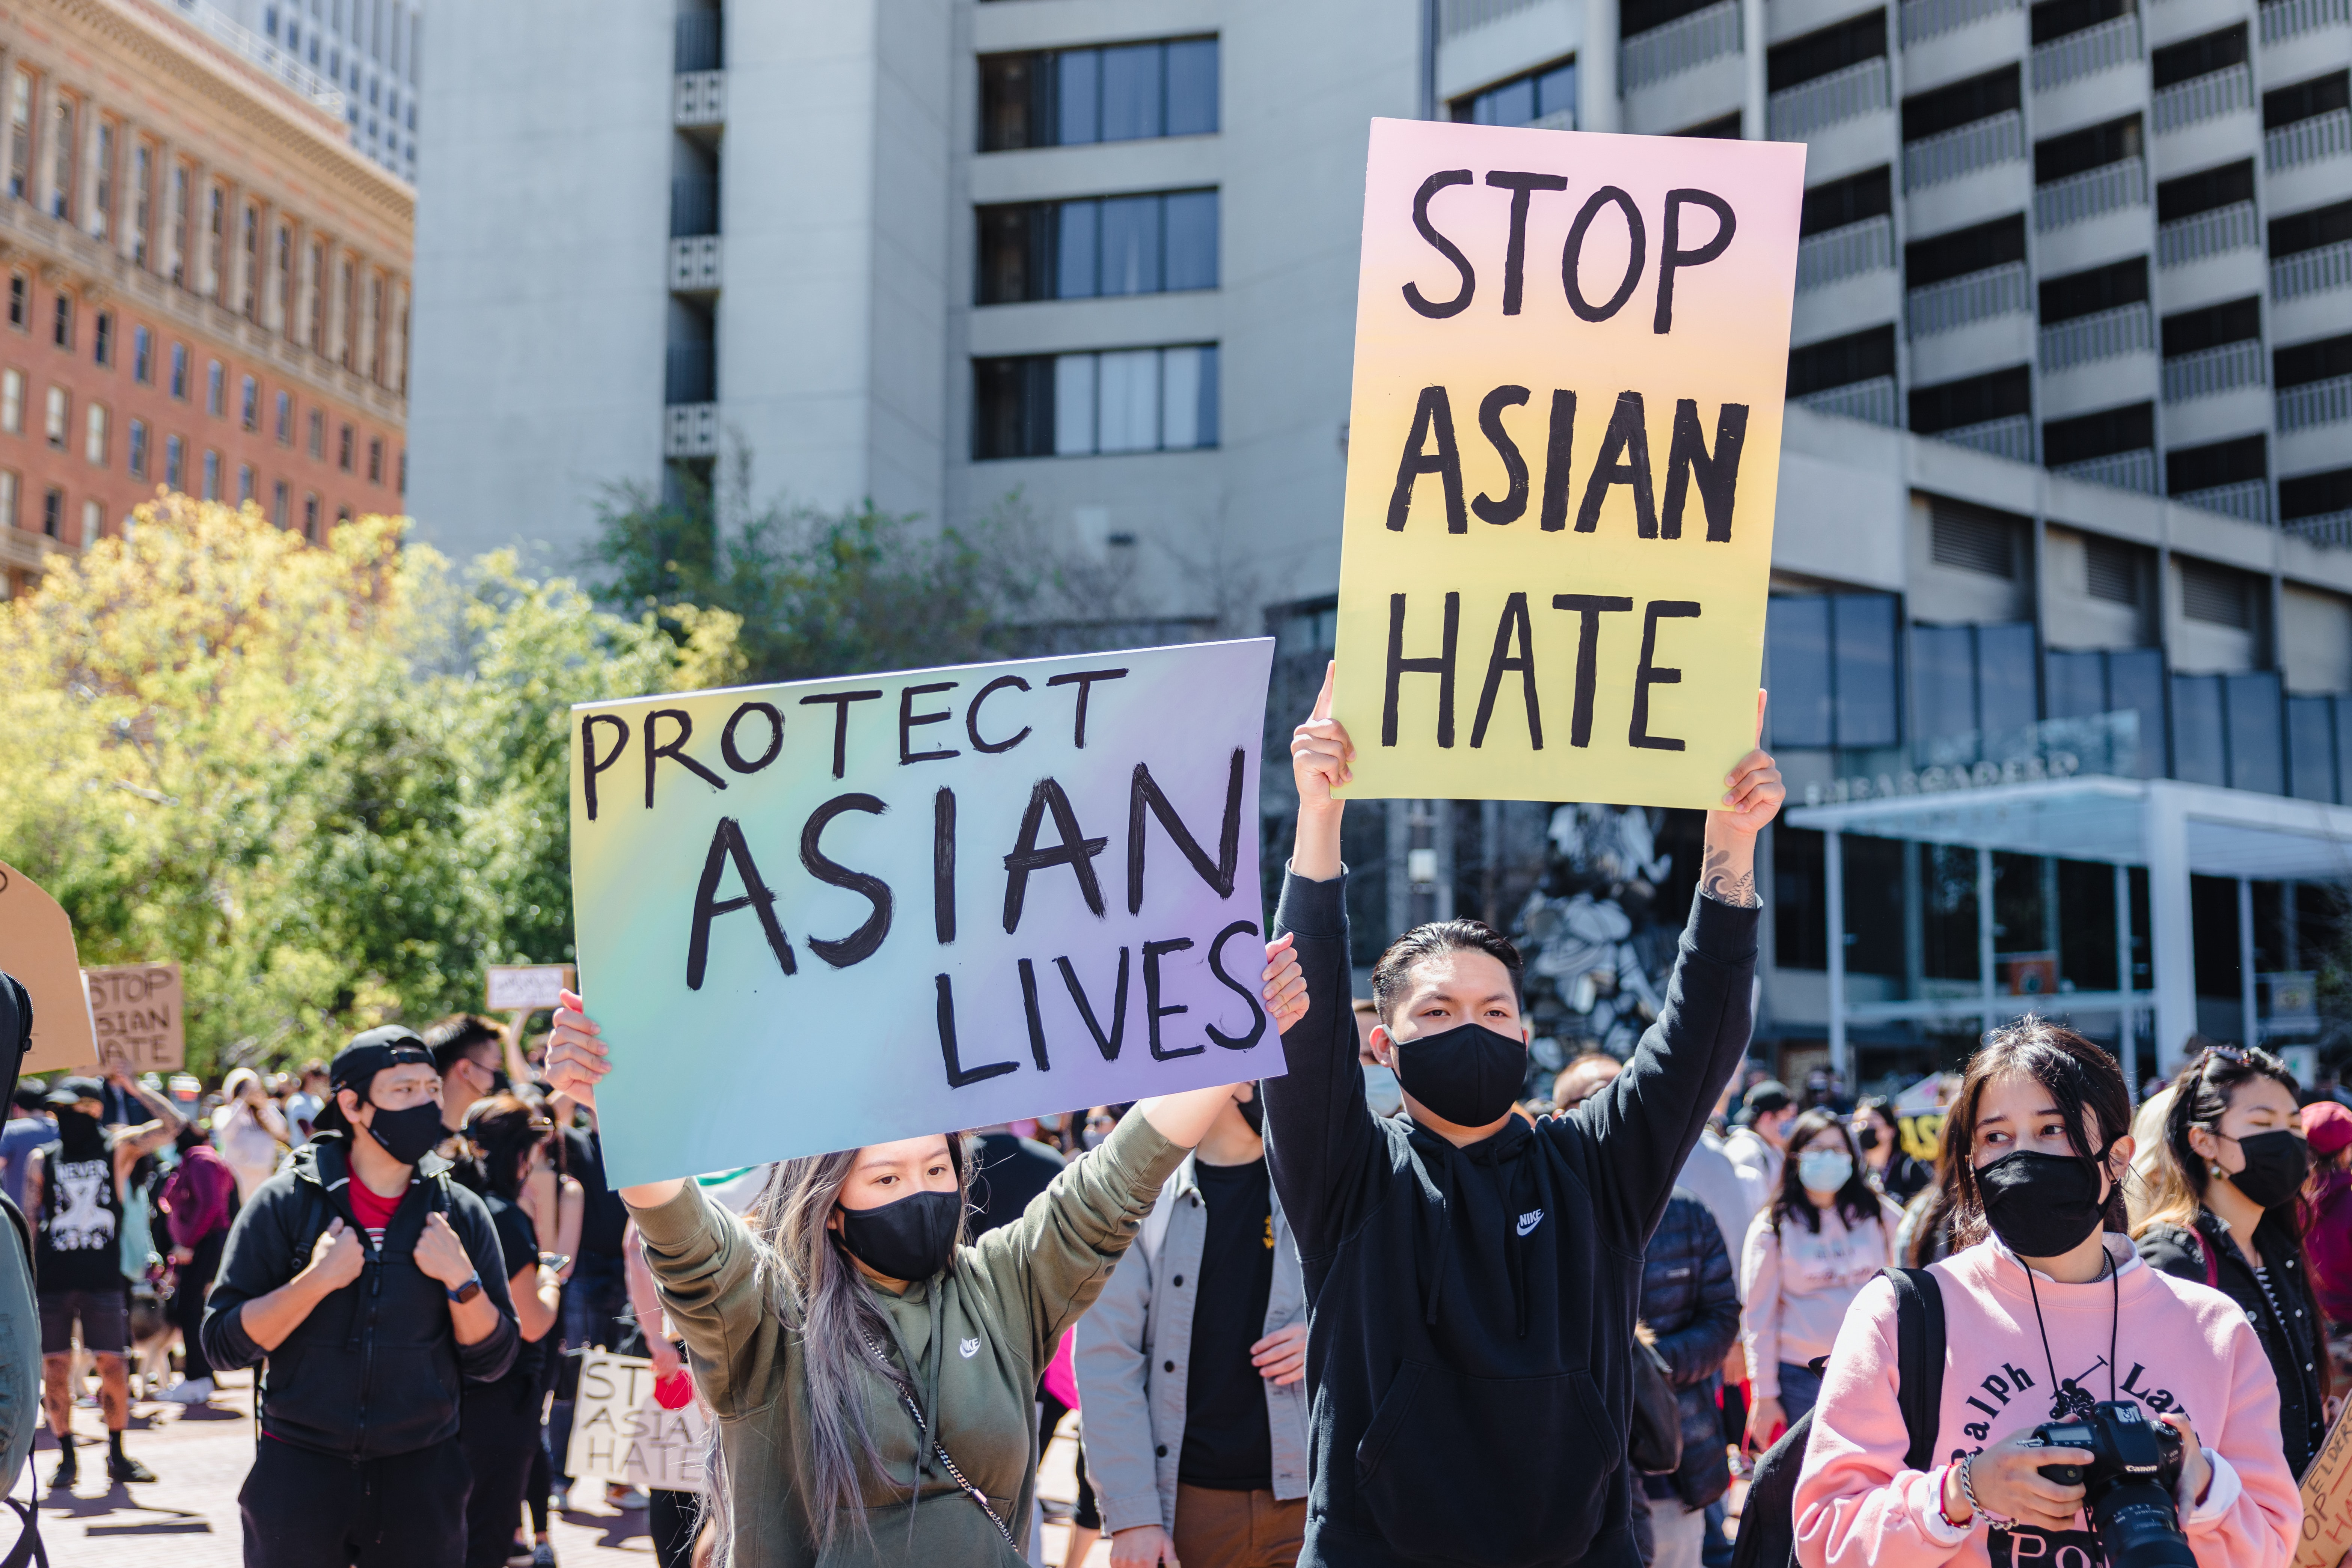 Stop Asian Hate and Protect Asian Lives Signs at a rally